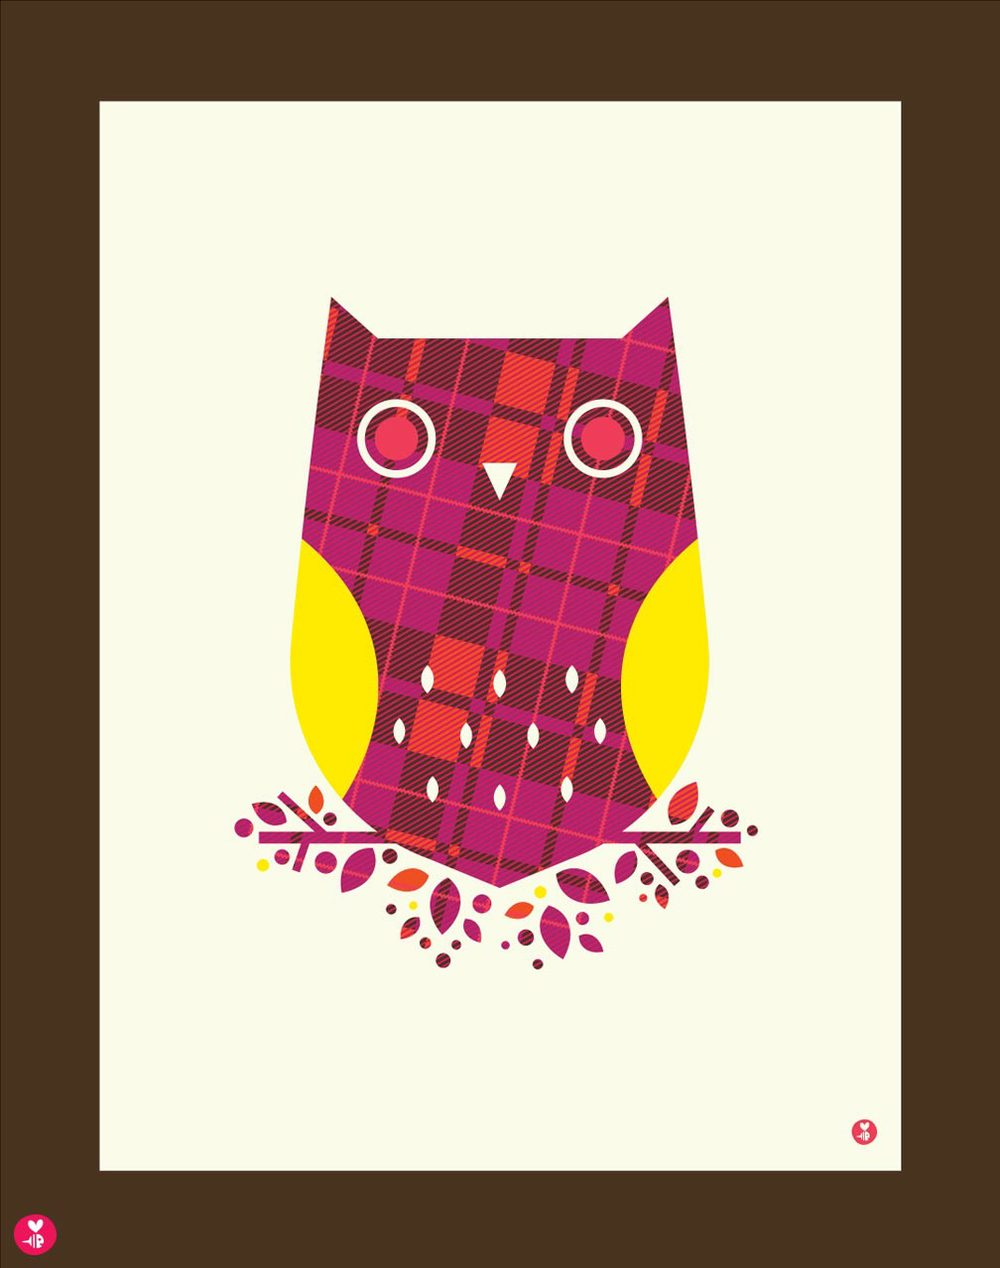 Burberry Owl Limited Edition Print